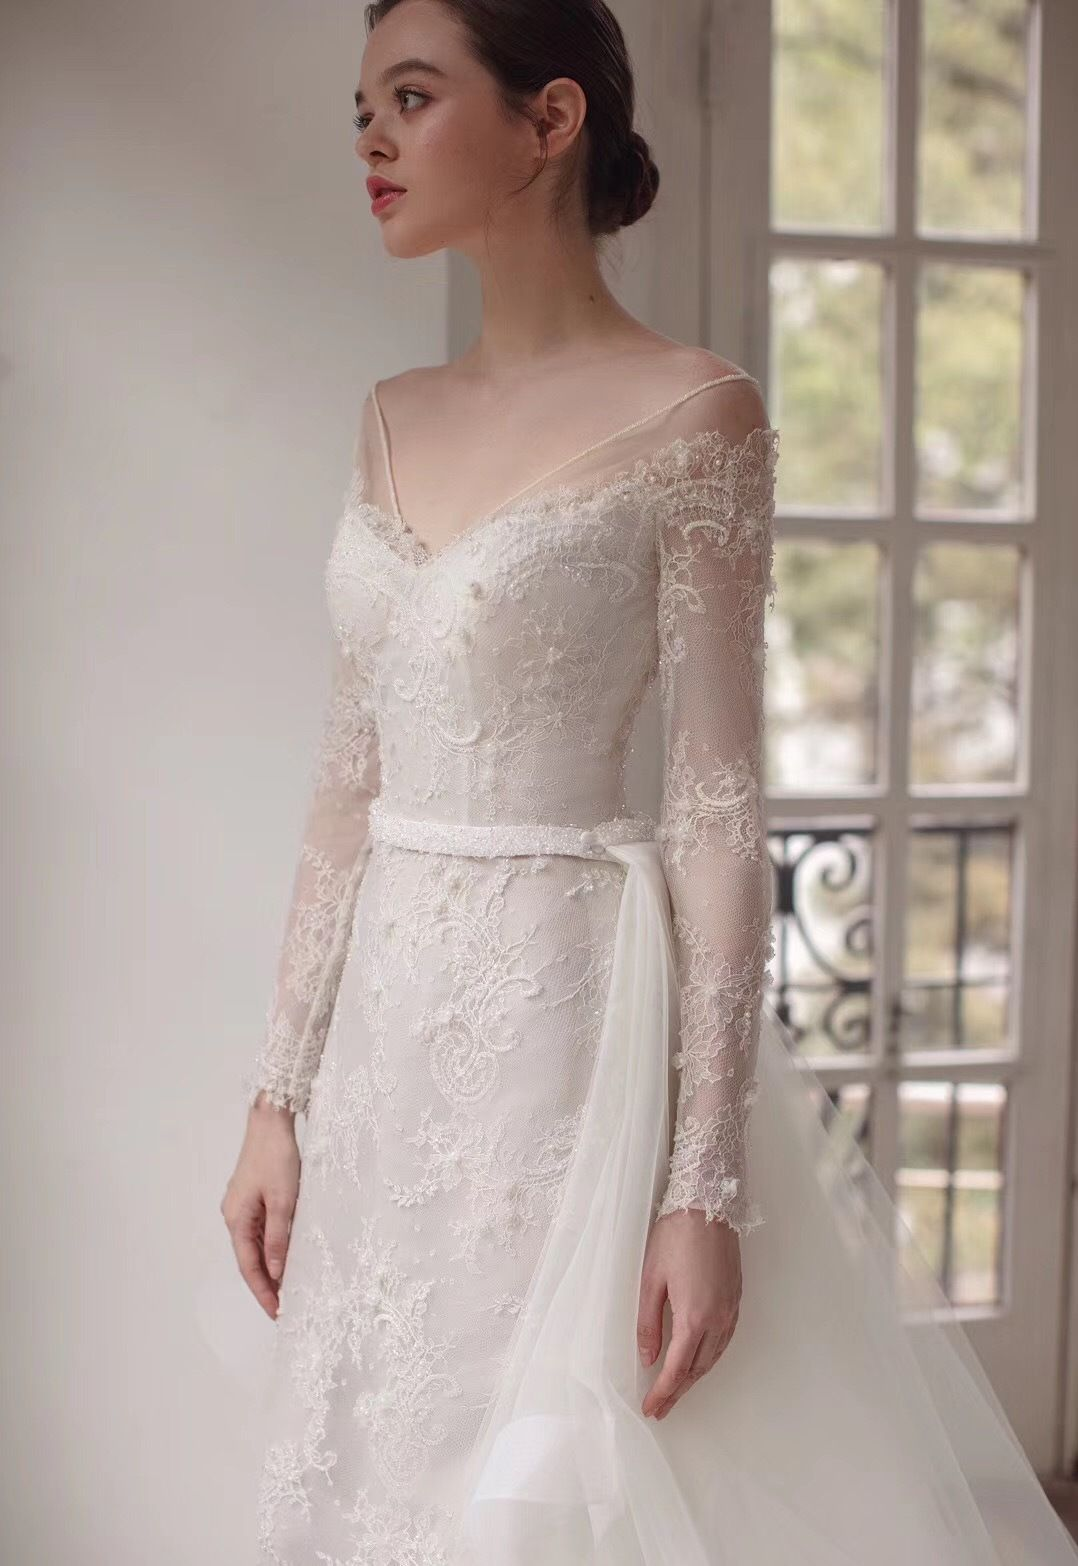 b47ccaf2f08c Wide V neck full sleeve lace wedding dress with detachable train lace  appliqués